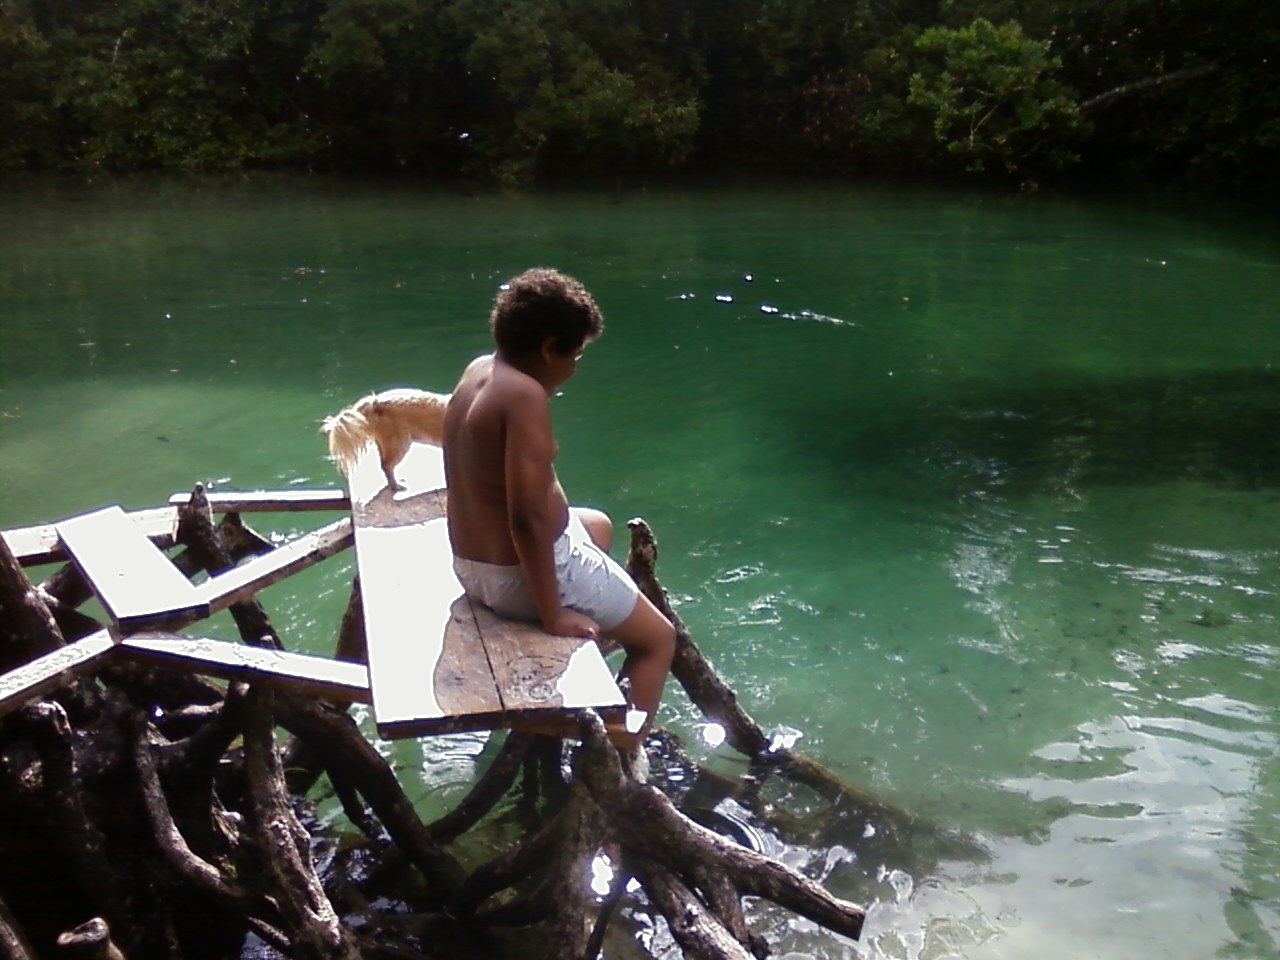 Jonny trying to decide whether he should swim in the Manatee water or not